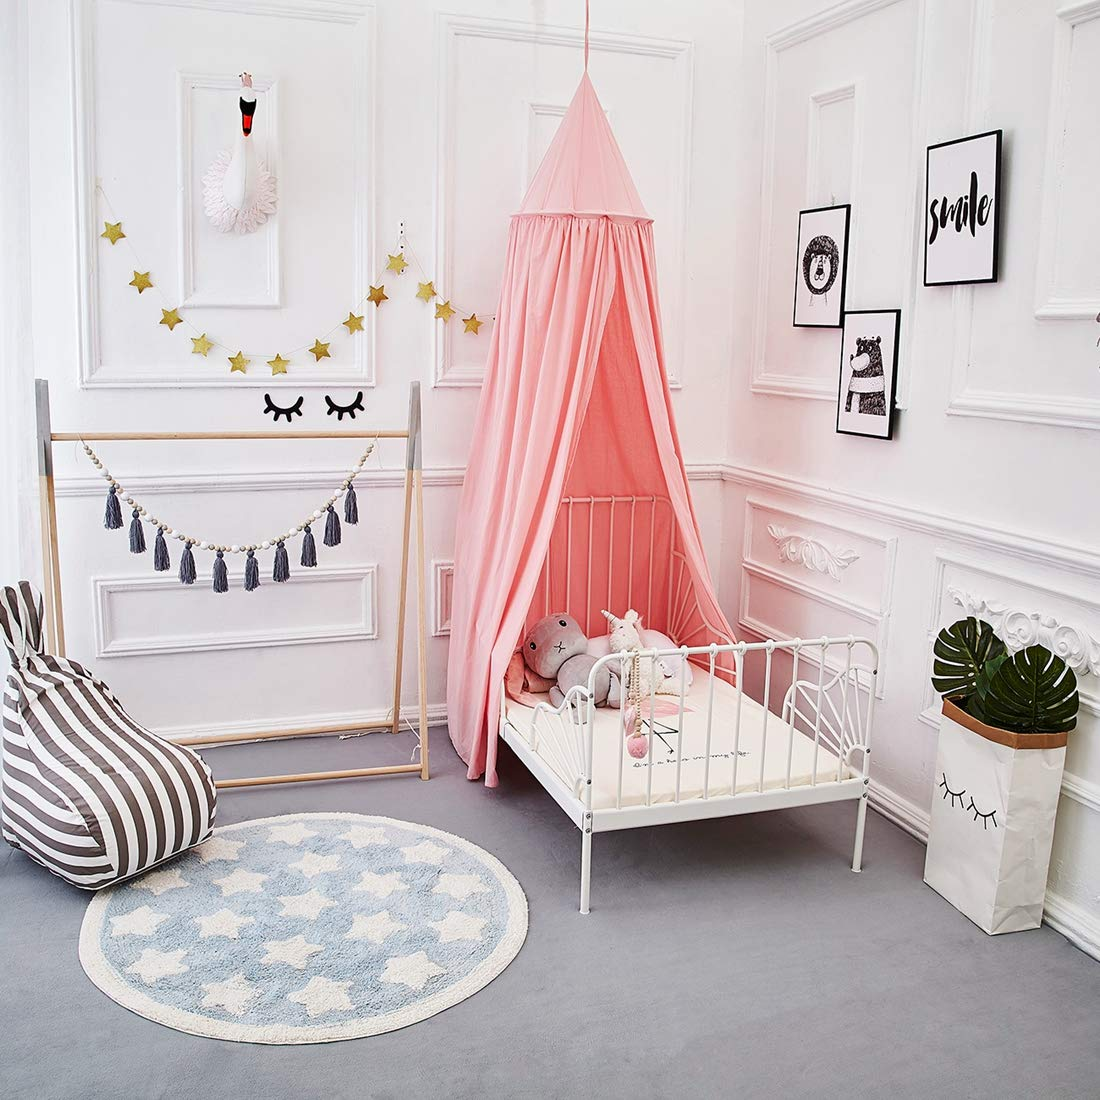 GoodStore 1405395004USAD ONMIER Mosquito Net Canopy Grey Cotton Canvas Dome Princess Bed Canopy Kids Play Tent Mosquito Net Childrens Room Decorate for Baby Kids Indoor Outdoor Playing Reading